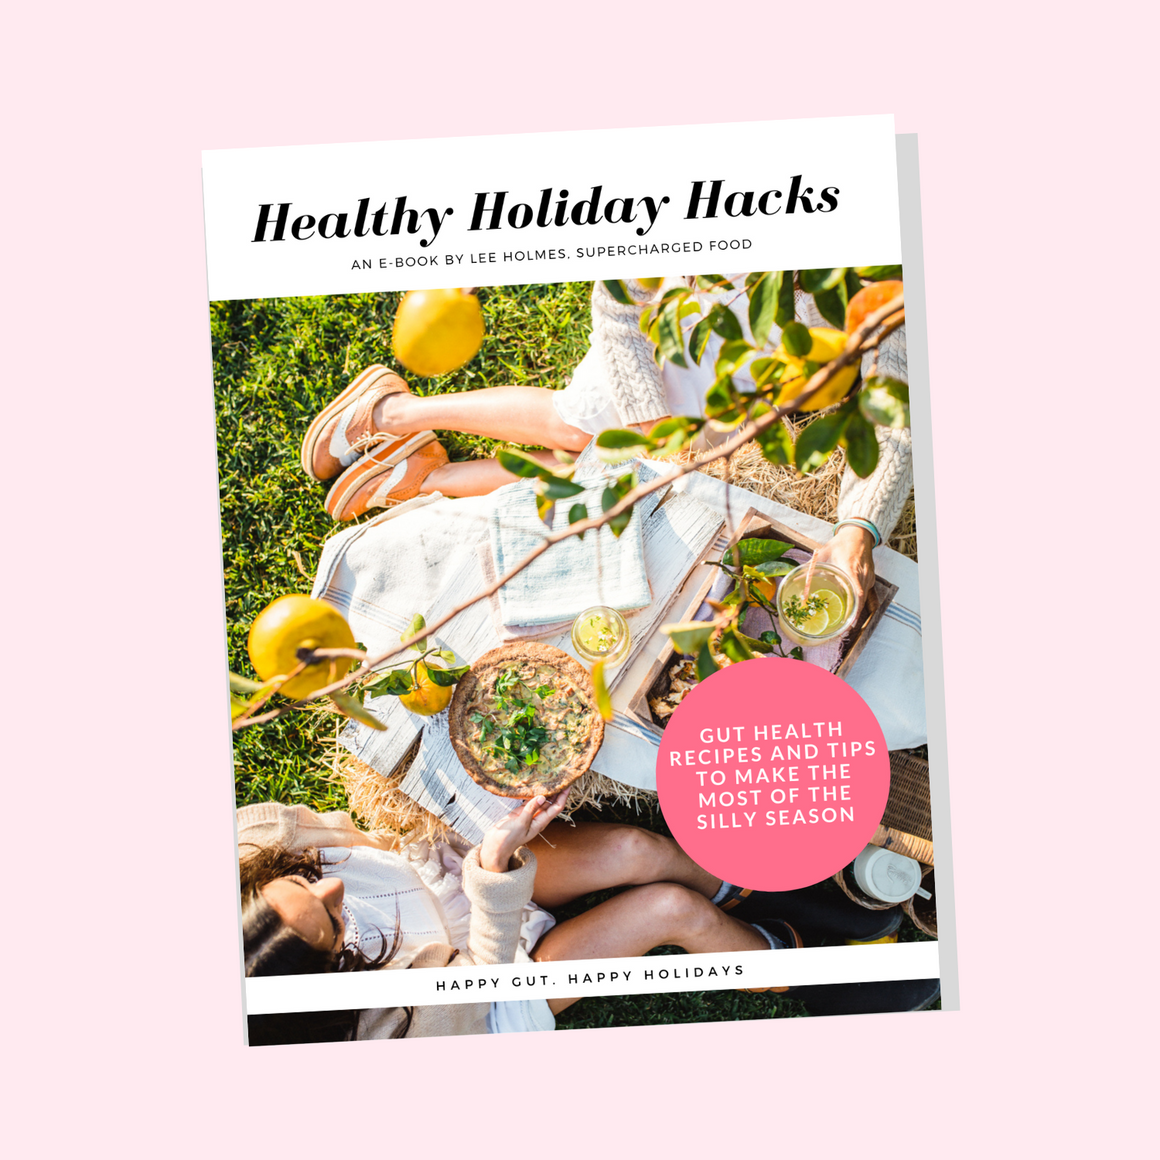 HEALTHY HOLIDAY HACKS eBOOK